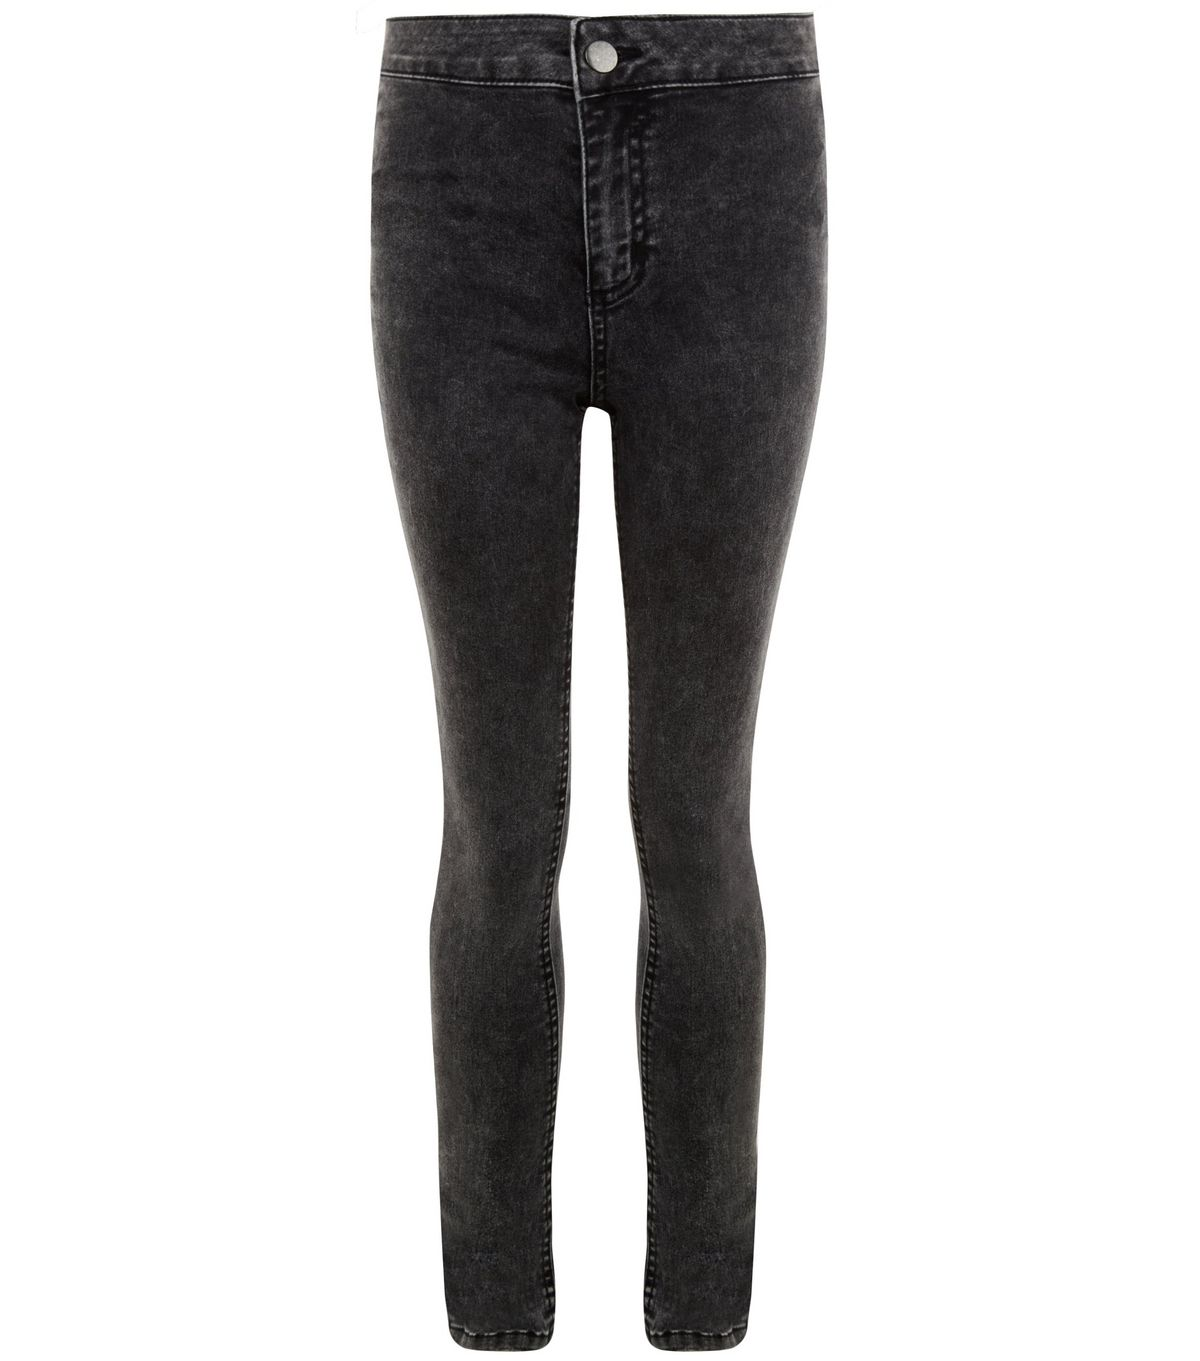 http://media.newlookassets.com/i/newlook/379228301/teens/jeans/disco-jeans/teens-black-acid-wash-high-waisted-super-skinny-jeans/?$new_pdp_szoom_image_1200$